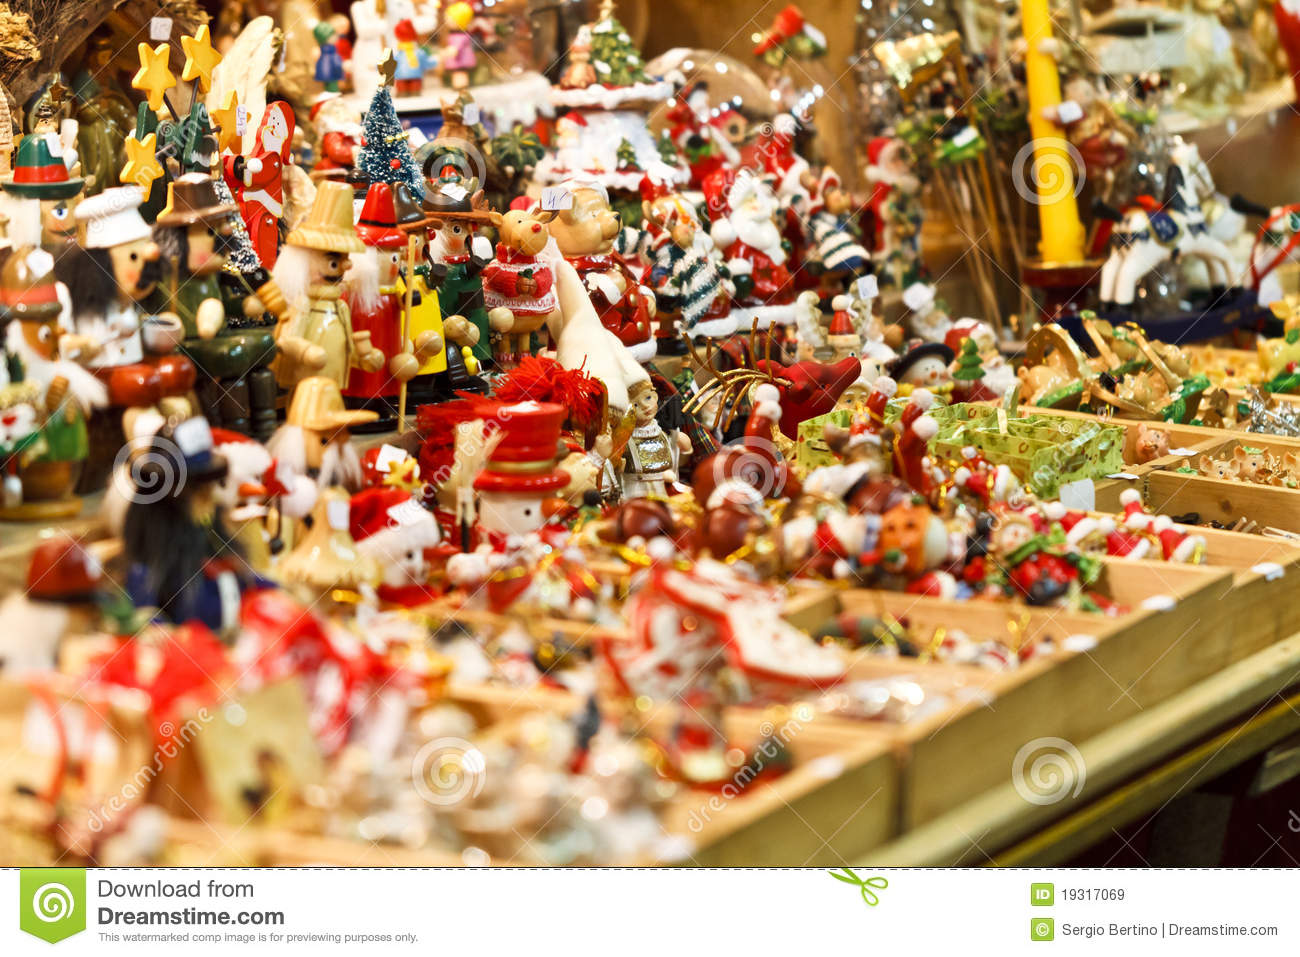 Christmas Toy Store : Christmas toys in store royalty free stock images image